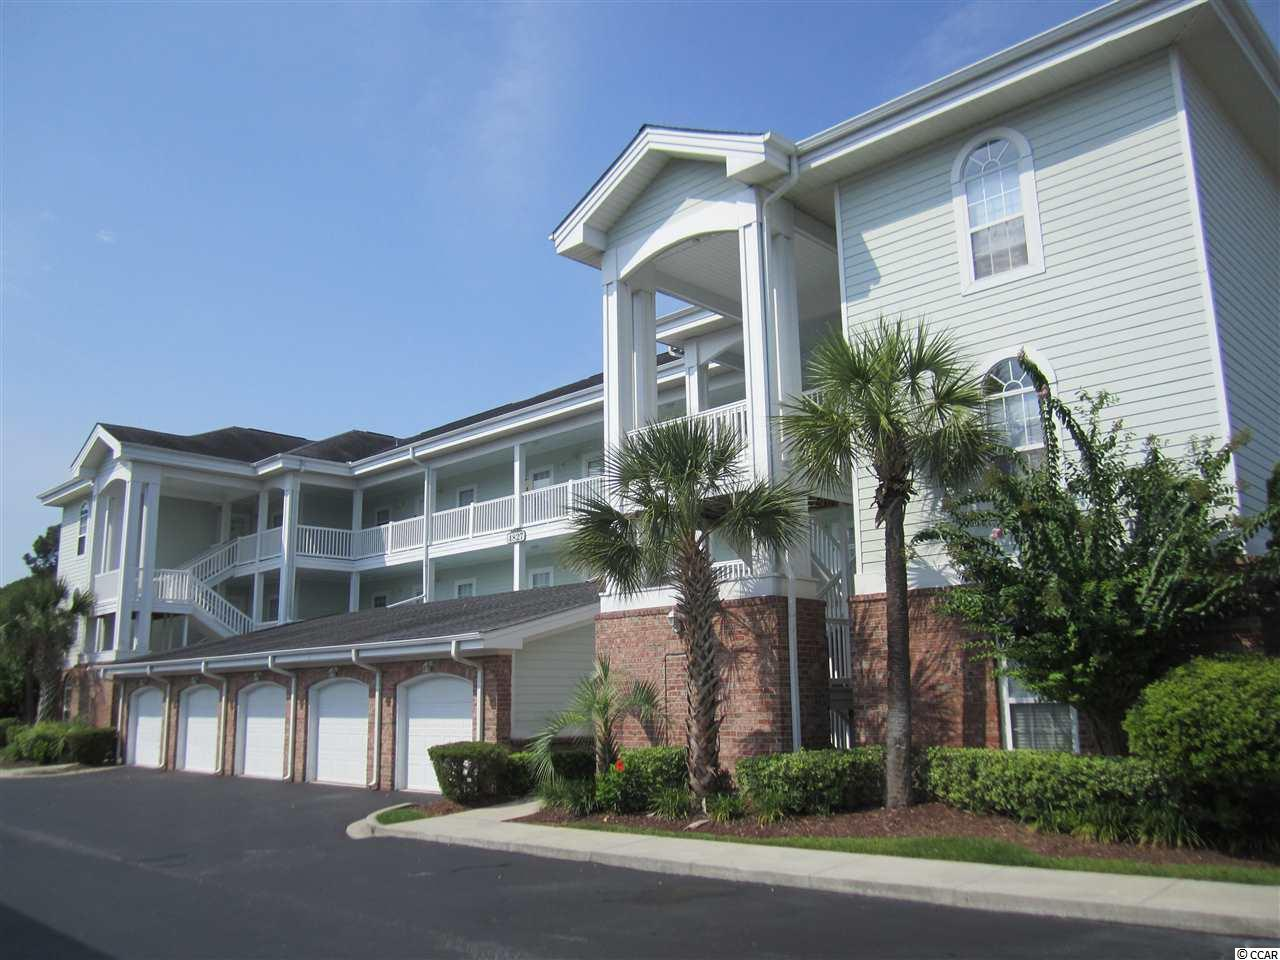 4877 DAHLIA COURT 101 AND GARAGE 21B 101, Myrtle Beach, SC 29577